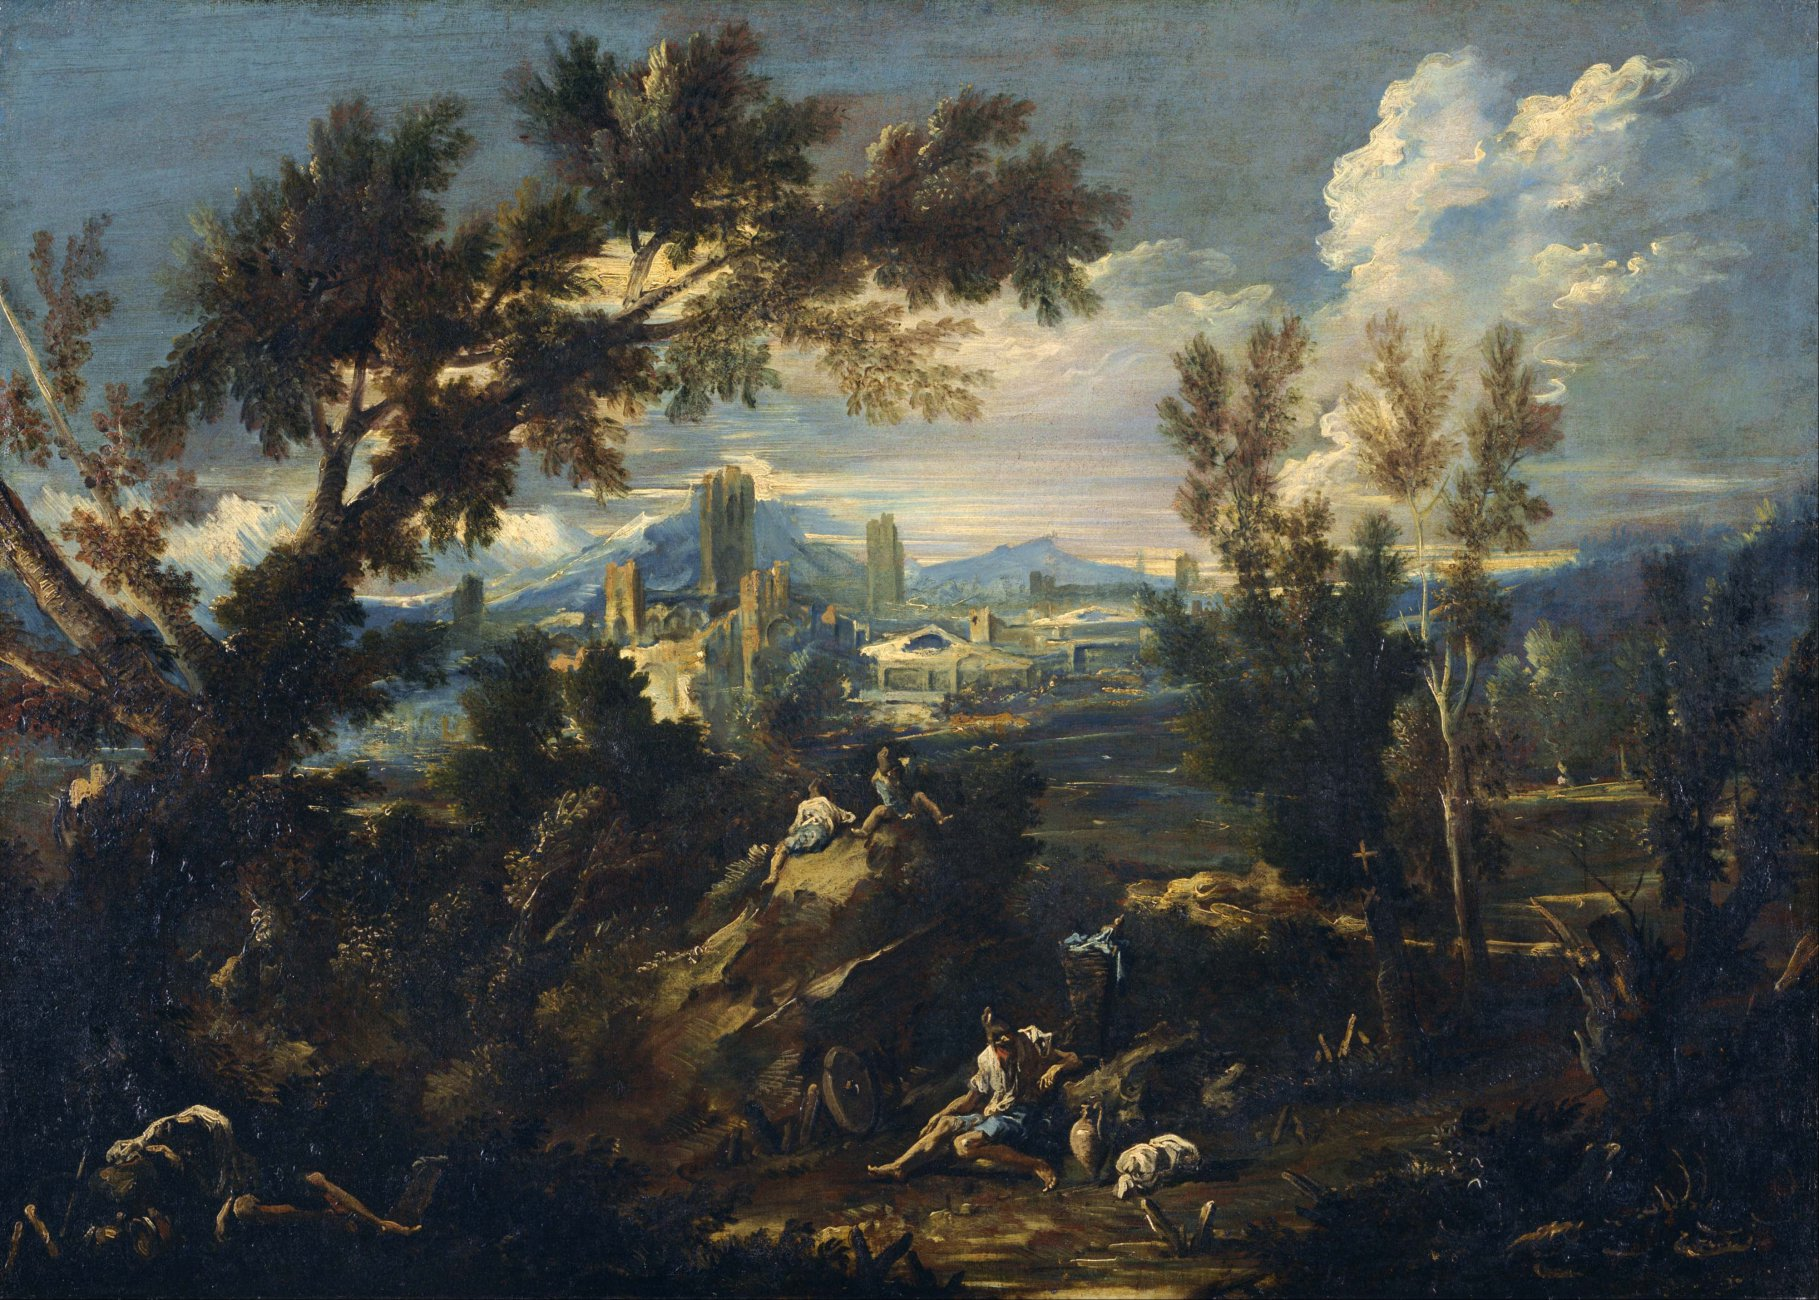 Alessandro_Magnasco_-_Landscape_with_Shepherds_-_Google_Art_Project.jpg